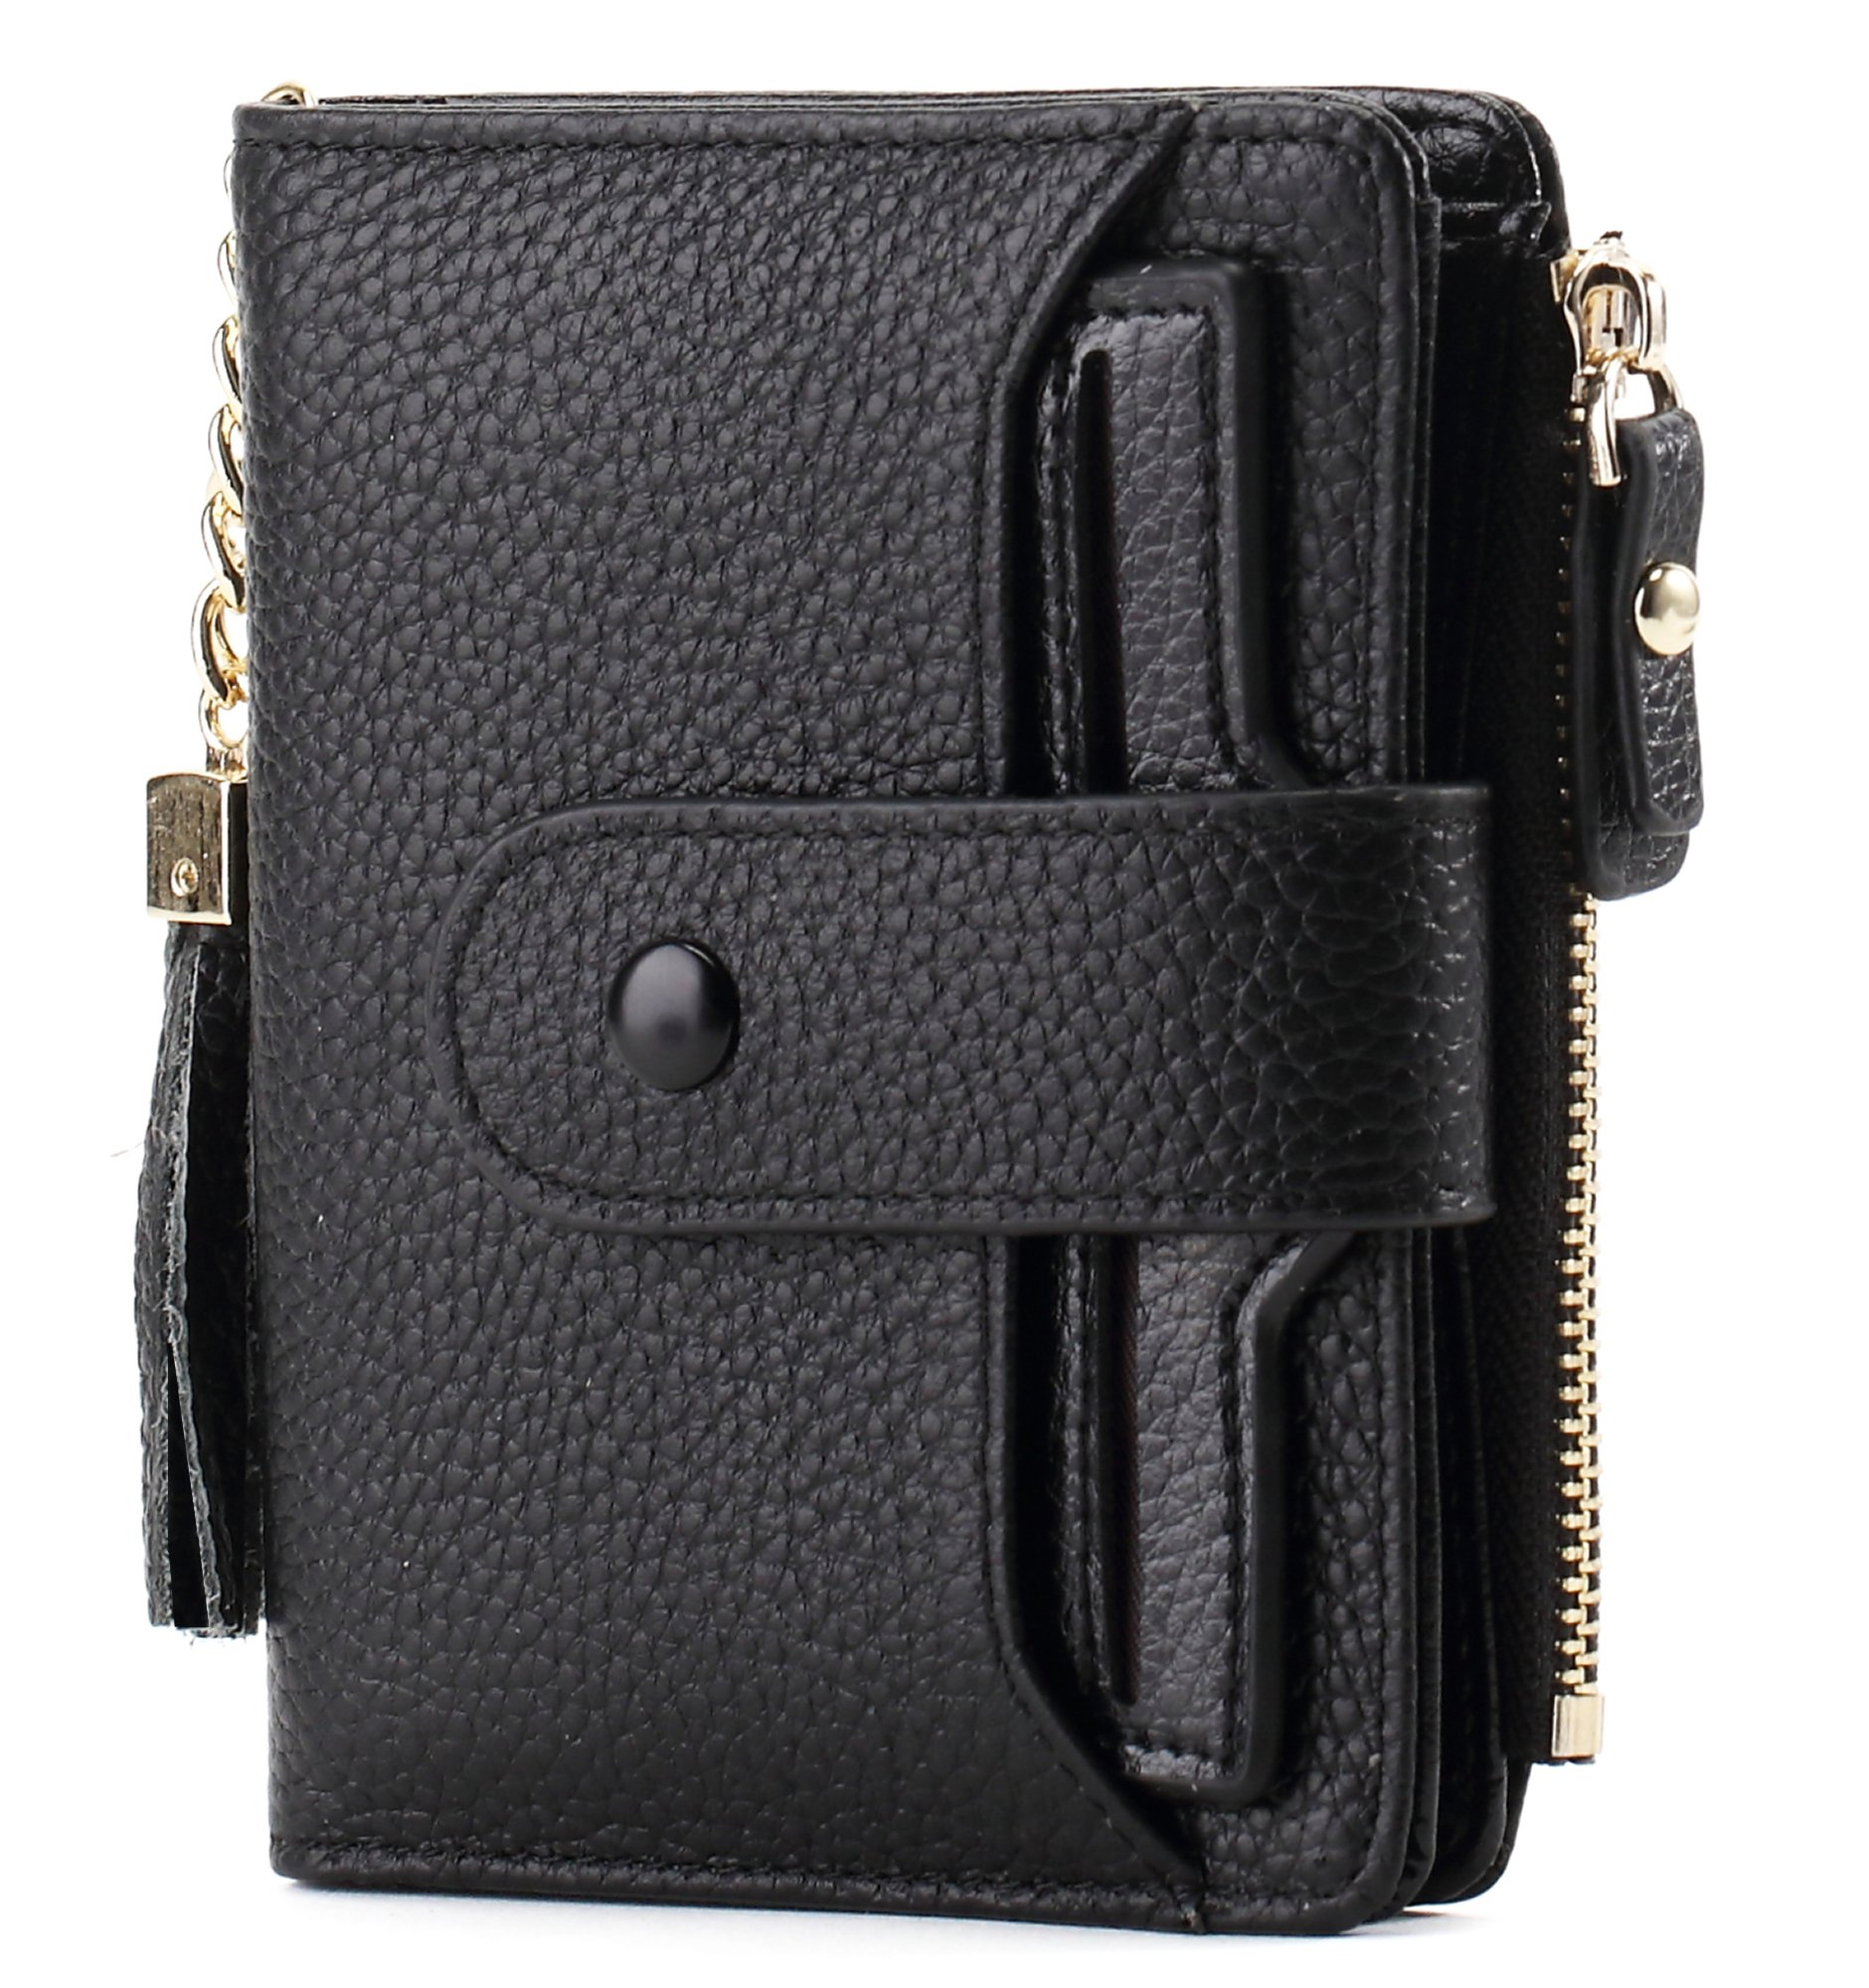 Women's Mini Soft Leather Wallet with ID Window Card Sleeve Bifold Wallet Coin Purse (black)